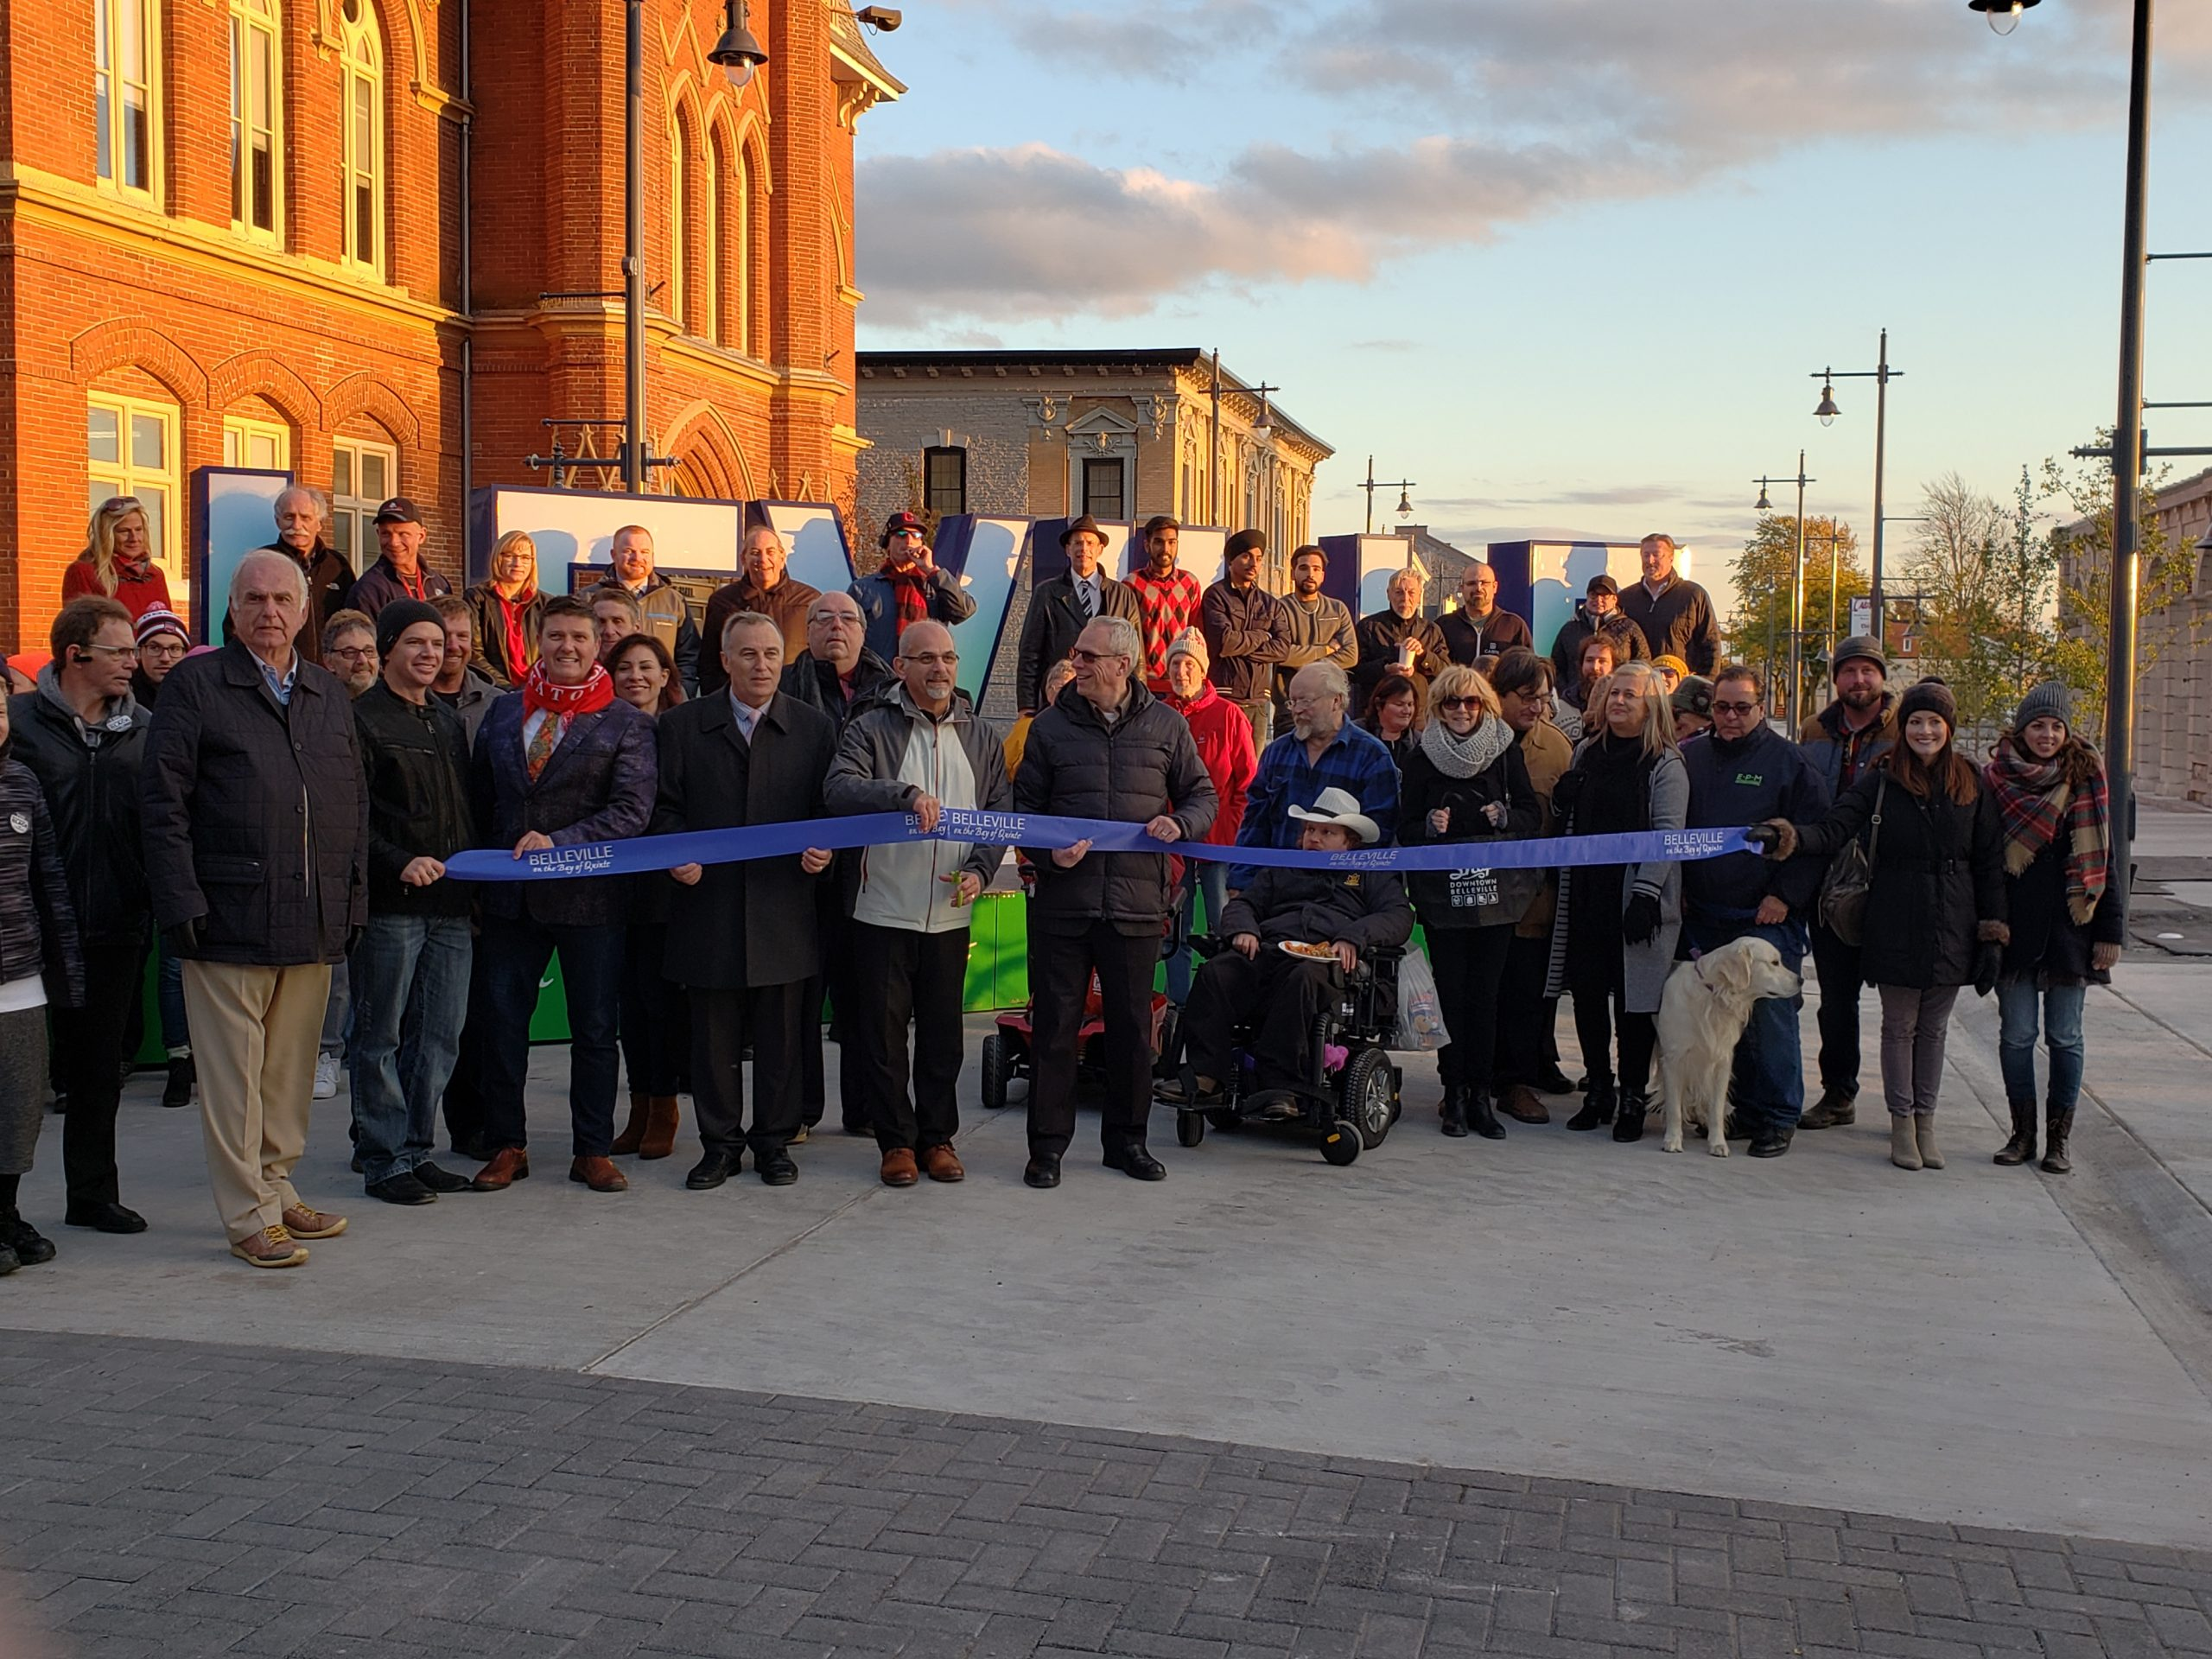 Downtown Belleville officially reopened for business